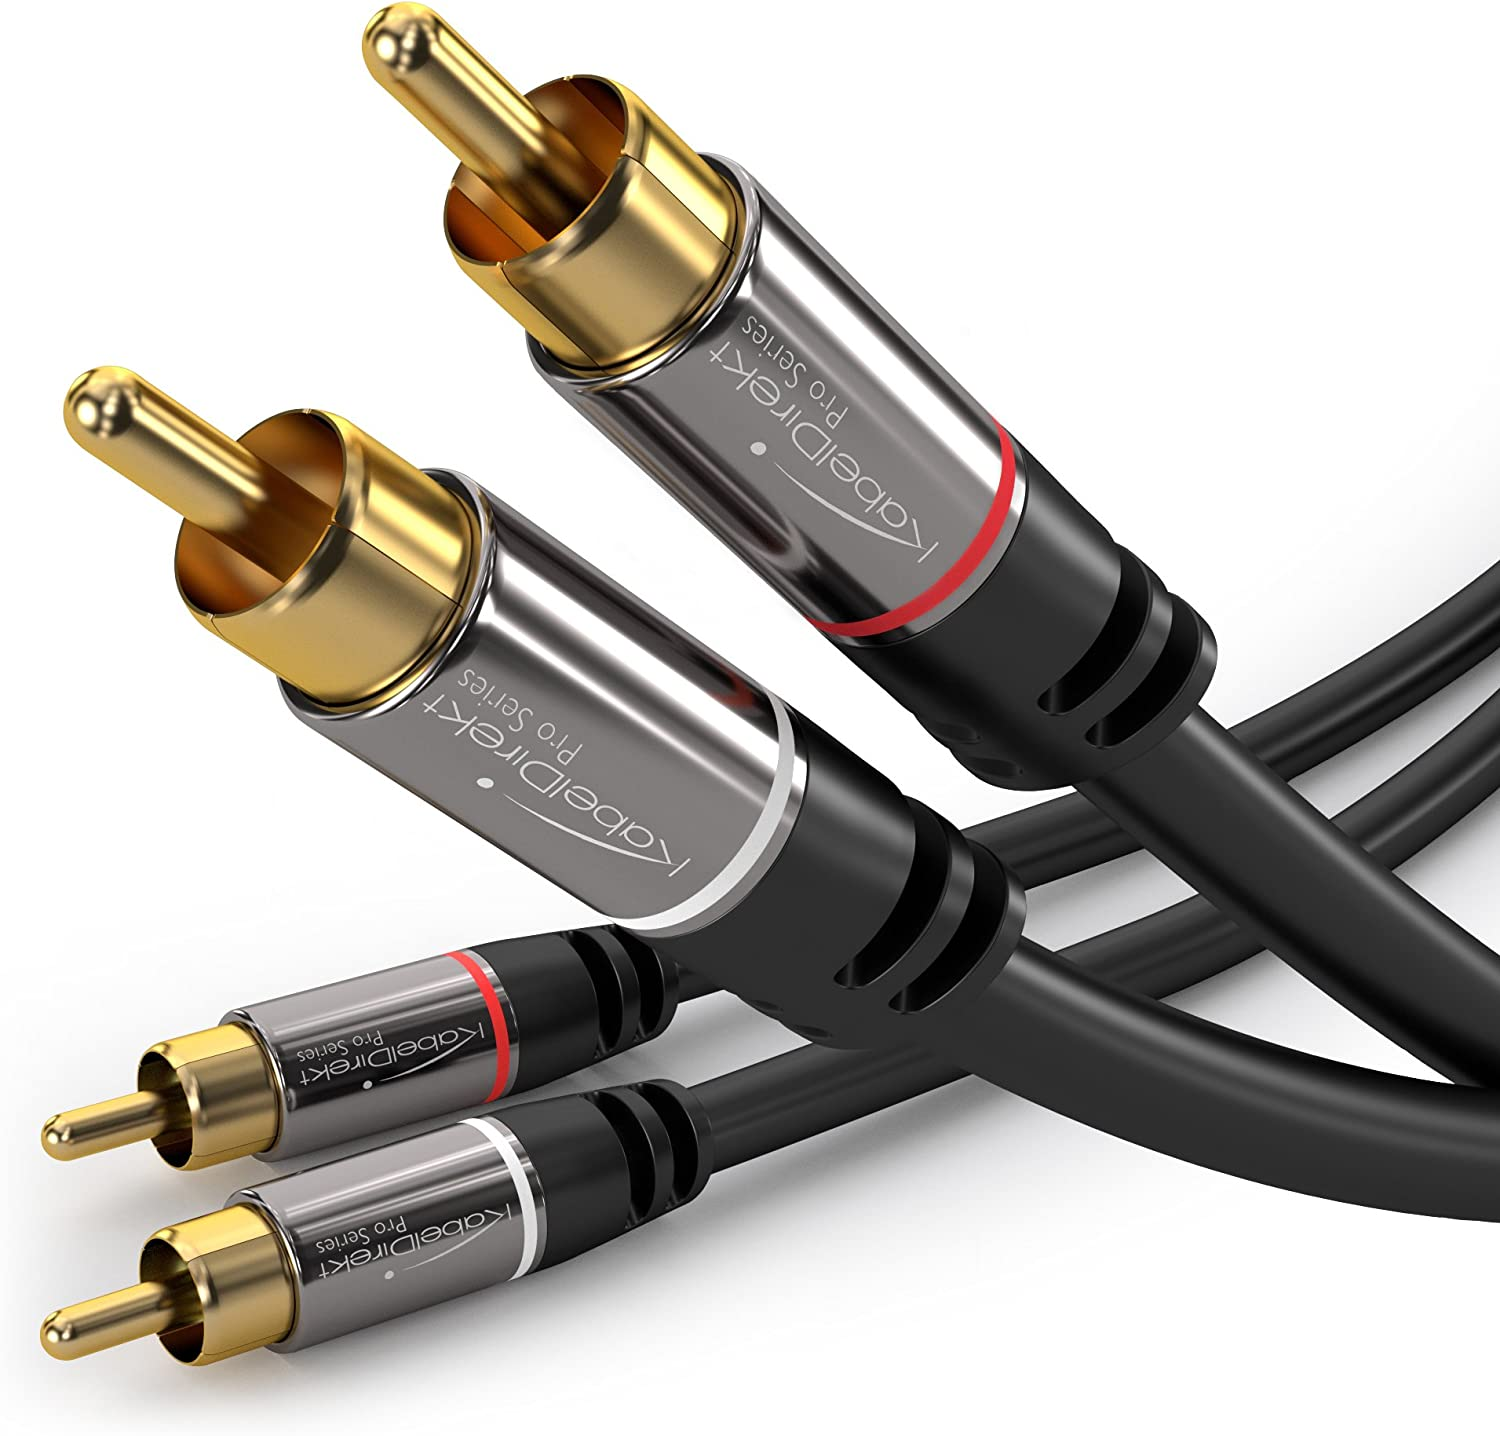 RCA Stereo Audio Cable Dual RCA Male 2 Channel Gold-Plated Connectors 25 Feet 2 Pack Right and Left